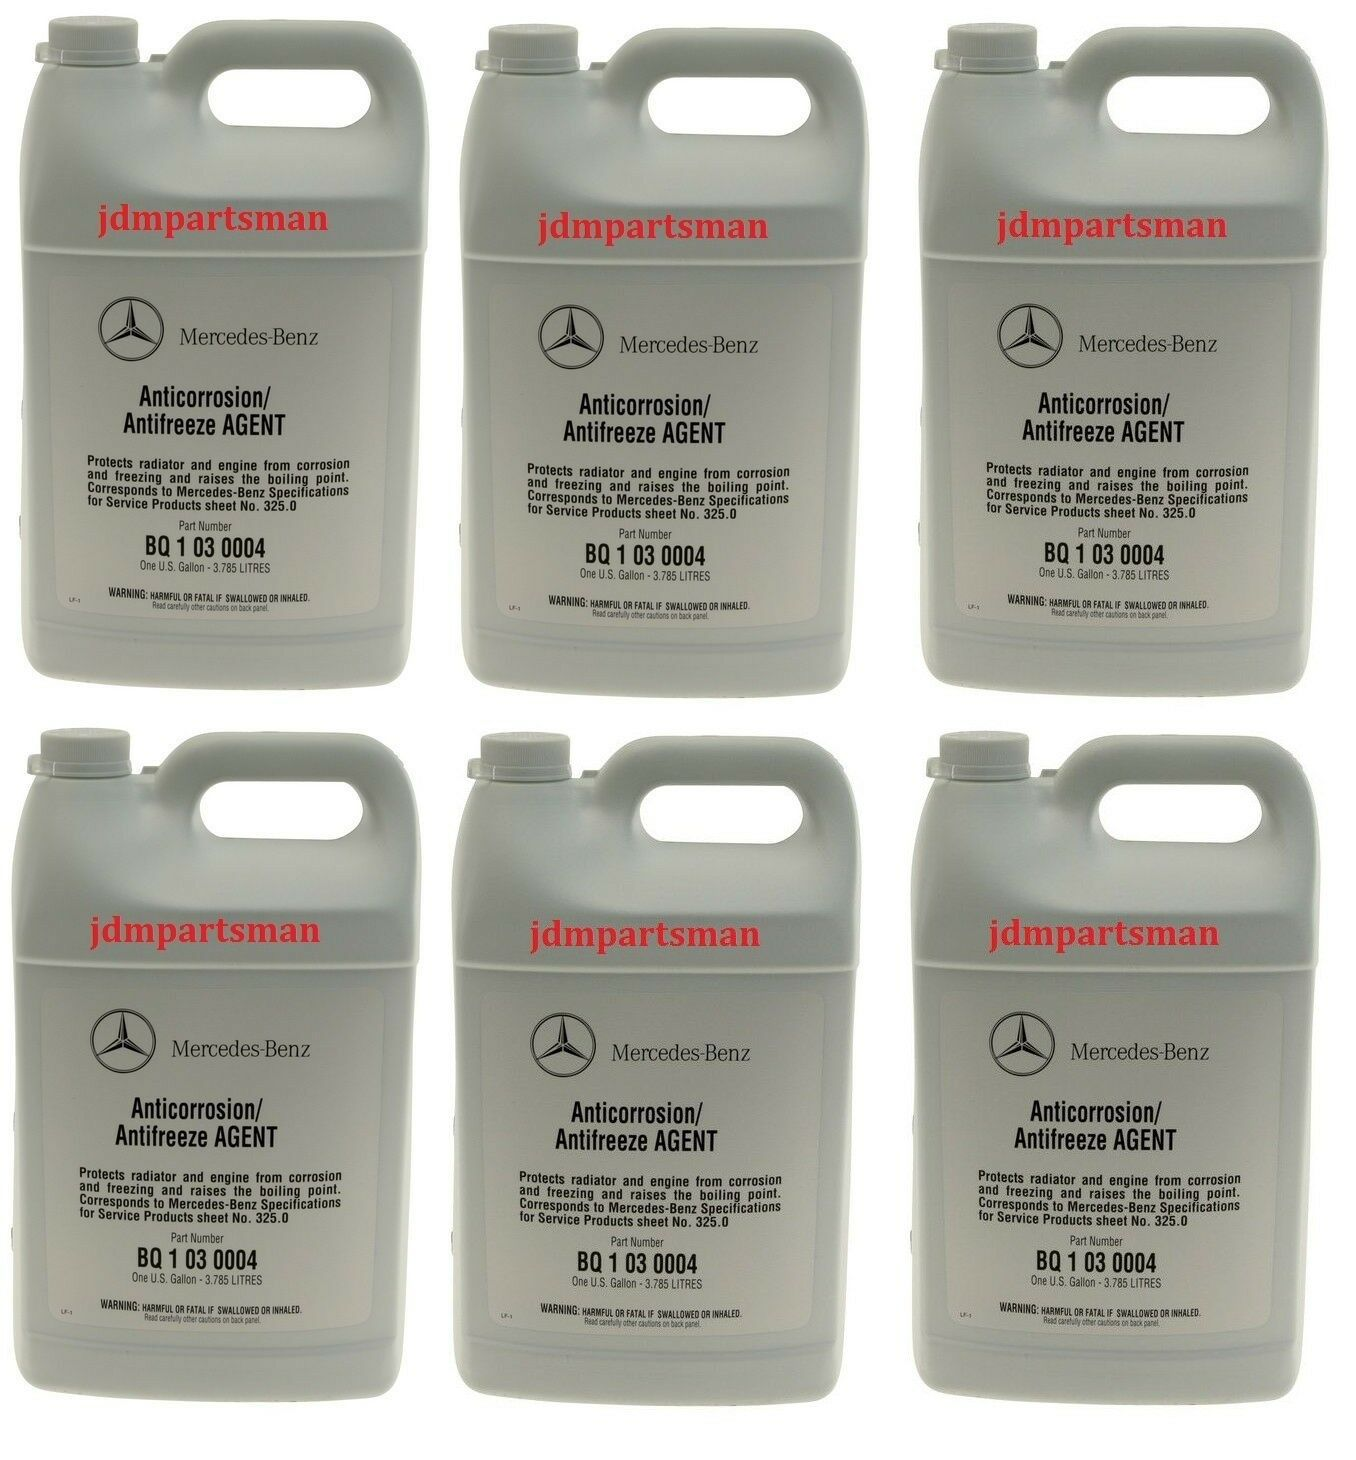 6x Genuine Mercedes-Benz Blue Colored Engine Coolant Antifreeze Gallon  BQ1030004 1 of 1 See More